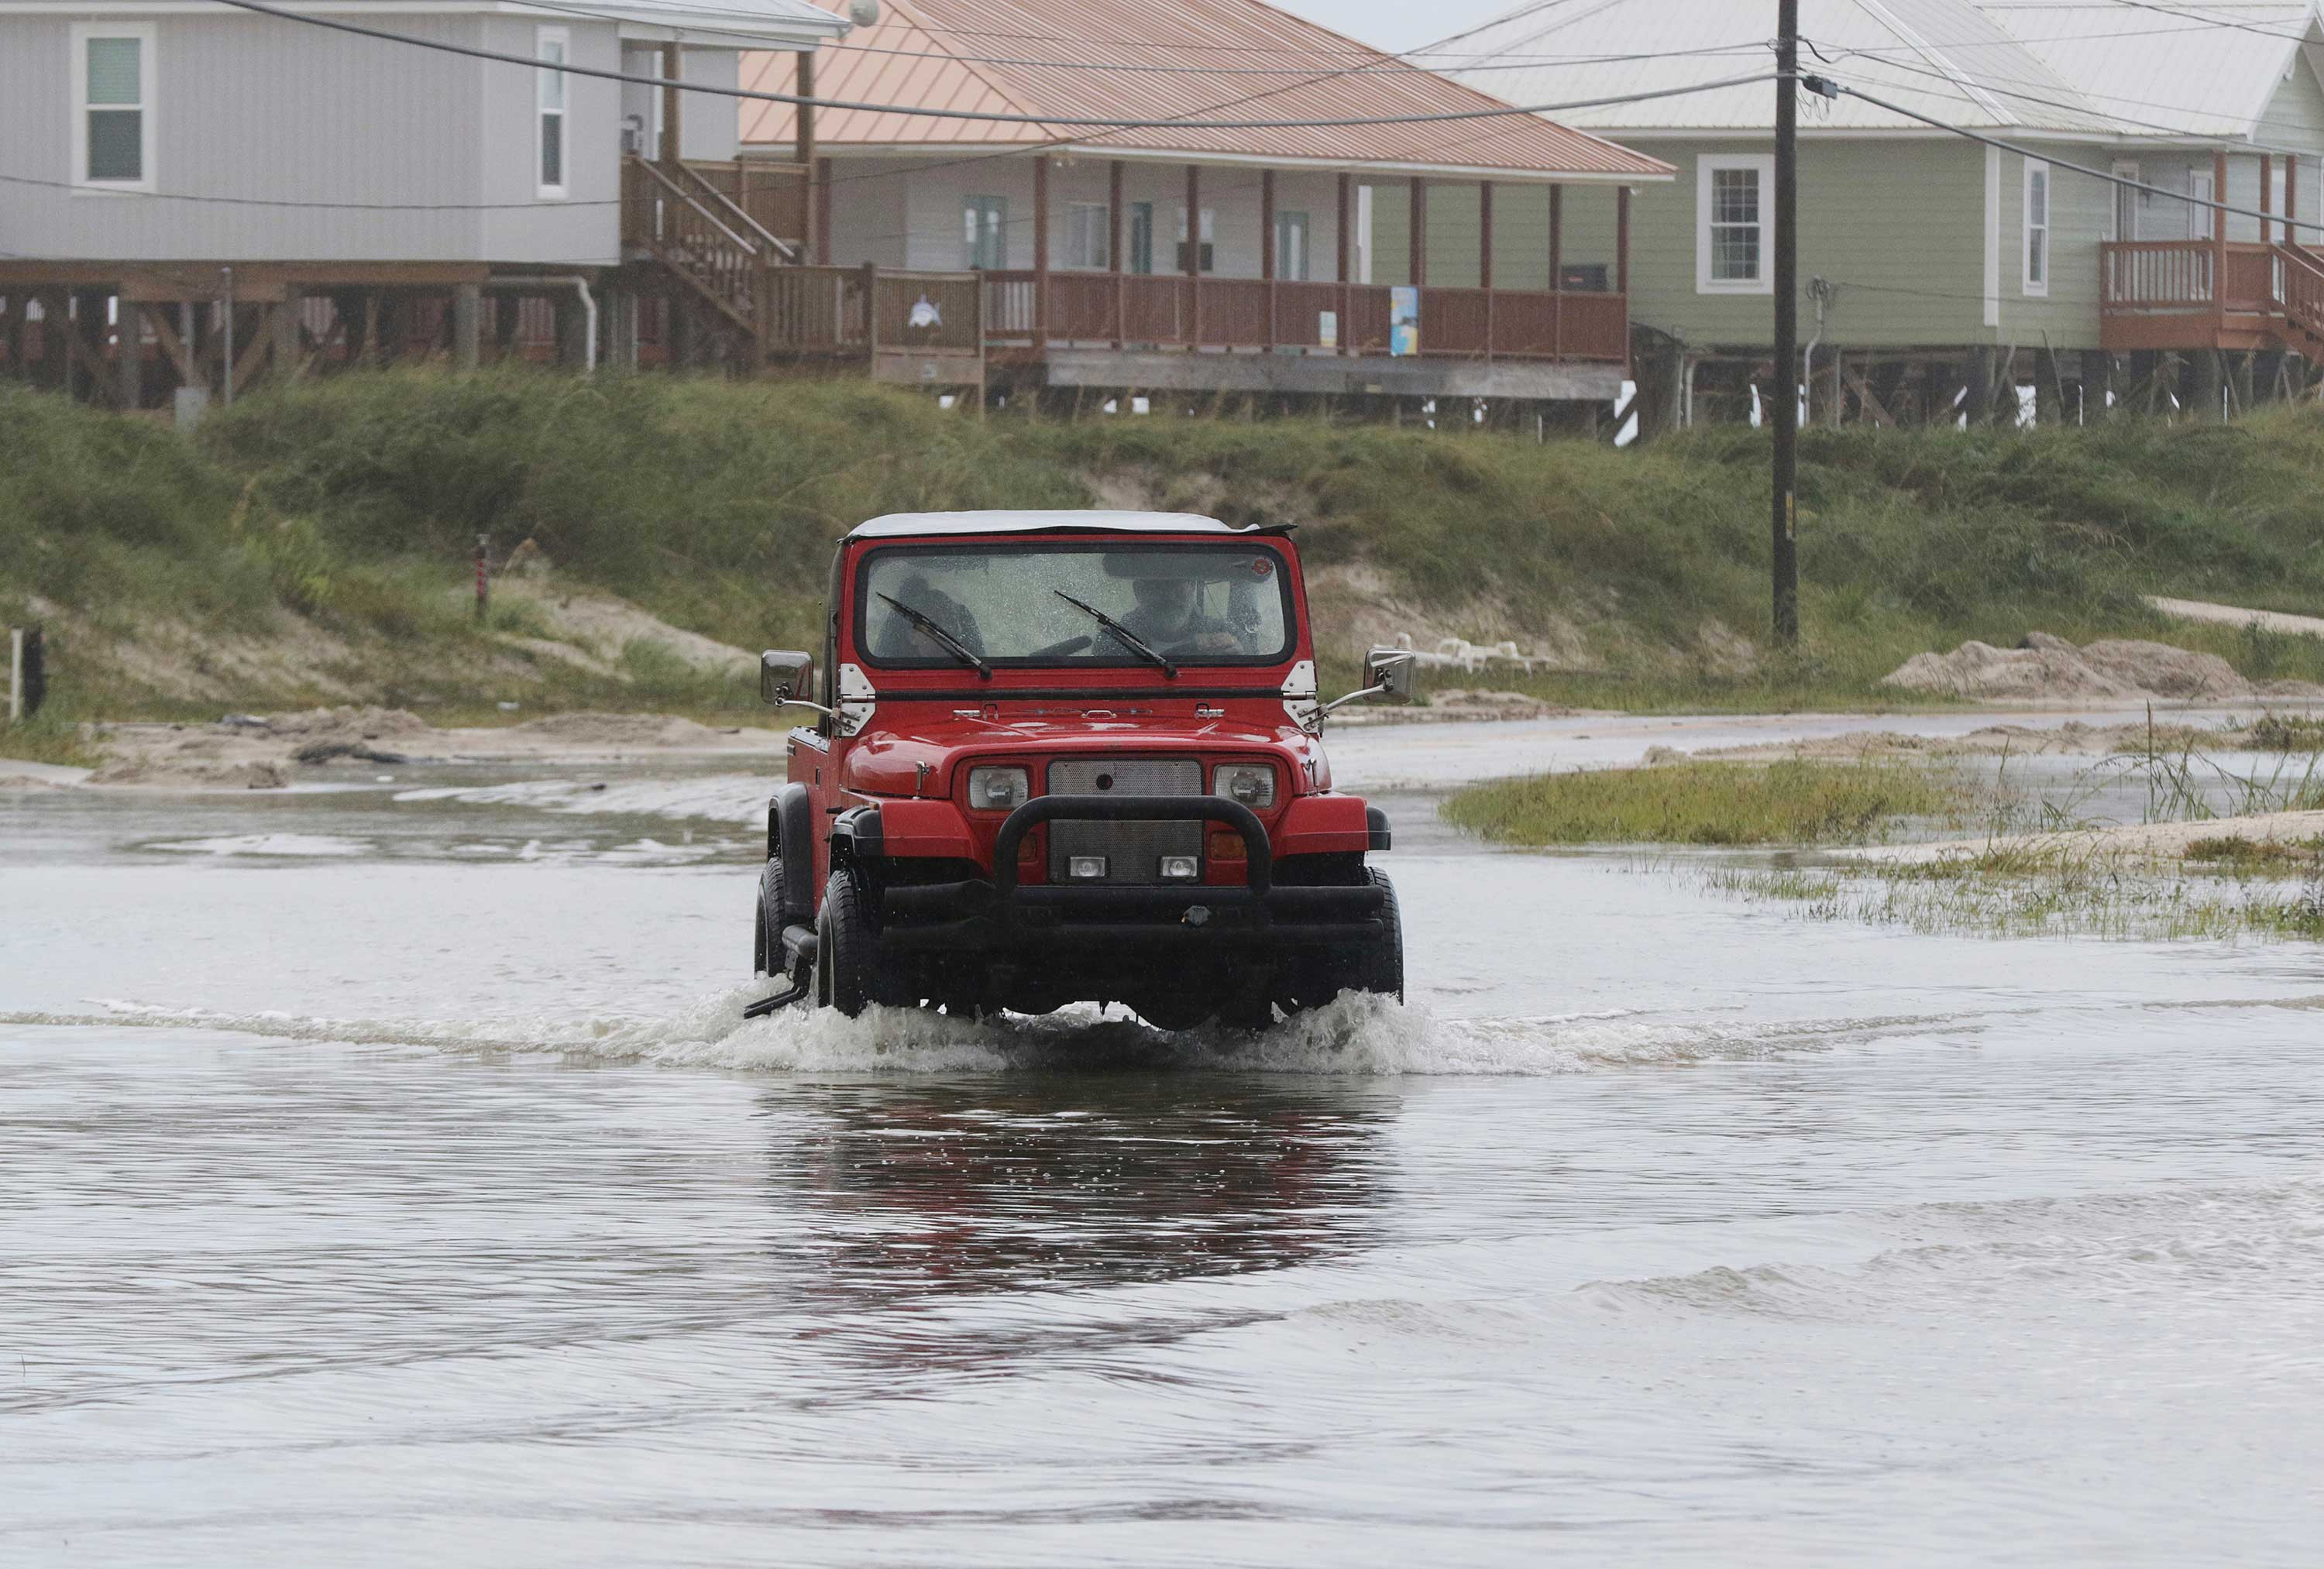 "<div class=""meta image-caption""><div class=""origin-logo origin-image none""><span>none</span></div><span class=""caption-text"">A vehicle drives through a flooded street from Tropical Storm Gordon on Wednesday, Sept. 5, 2018 in Dauphin Island, Ala. (Dan Anderson/AP Photo)</span></div>"